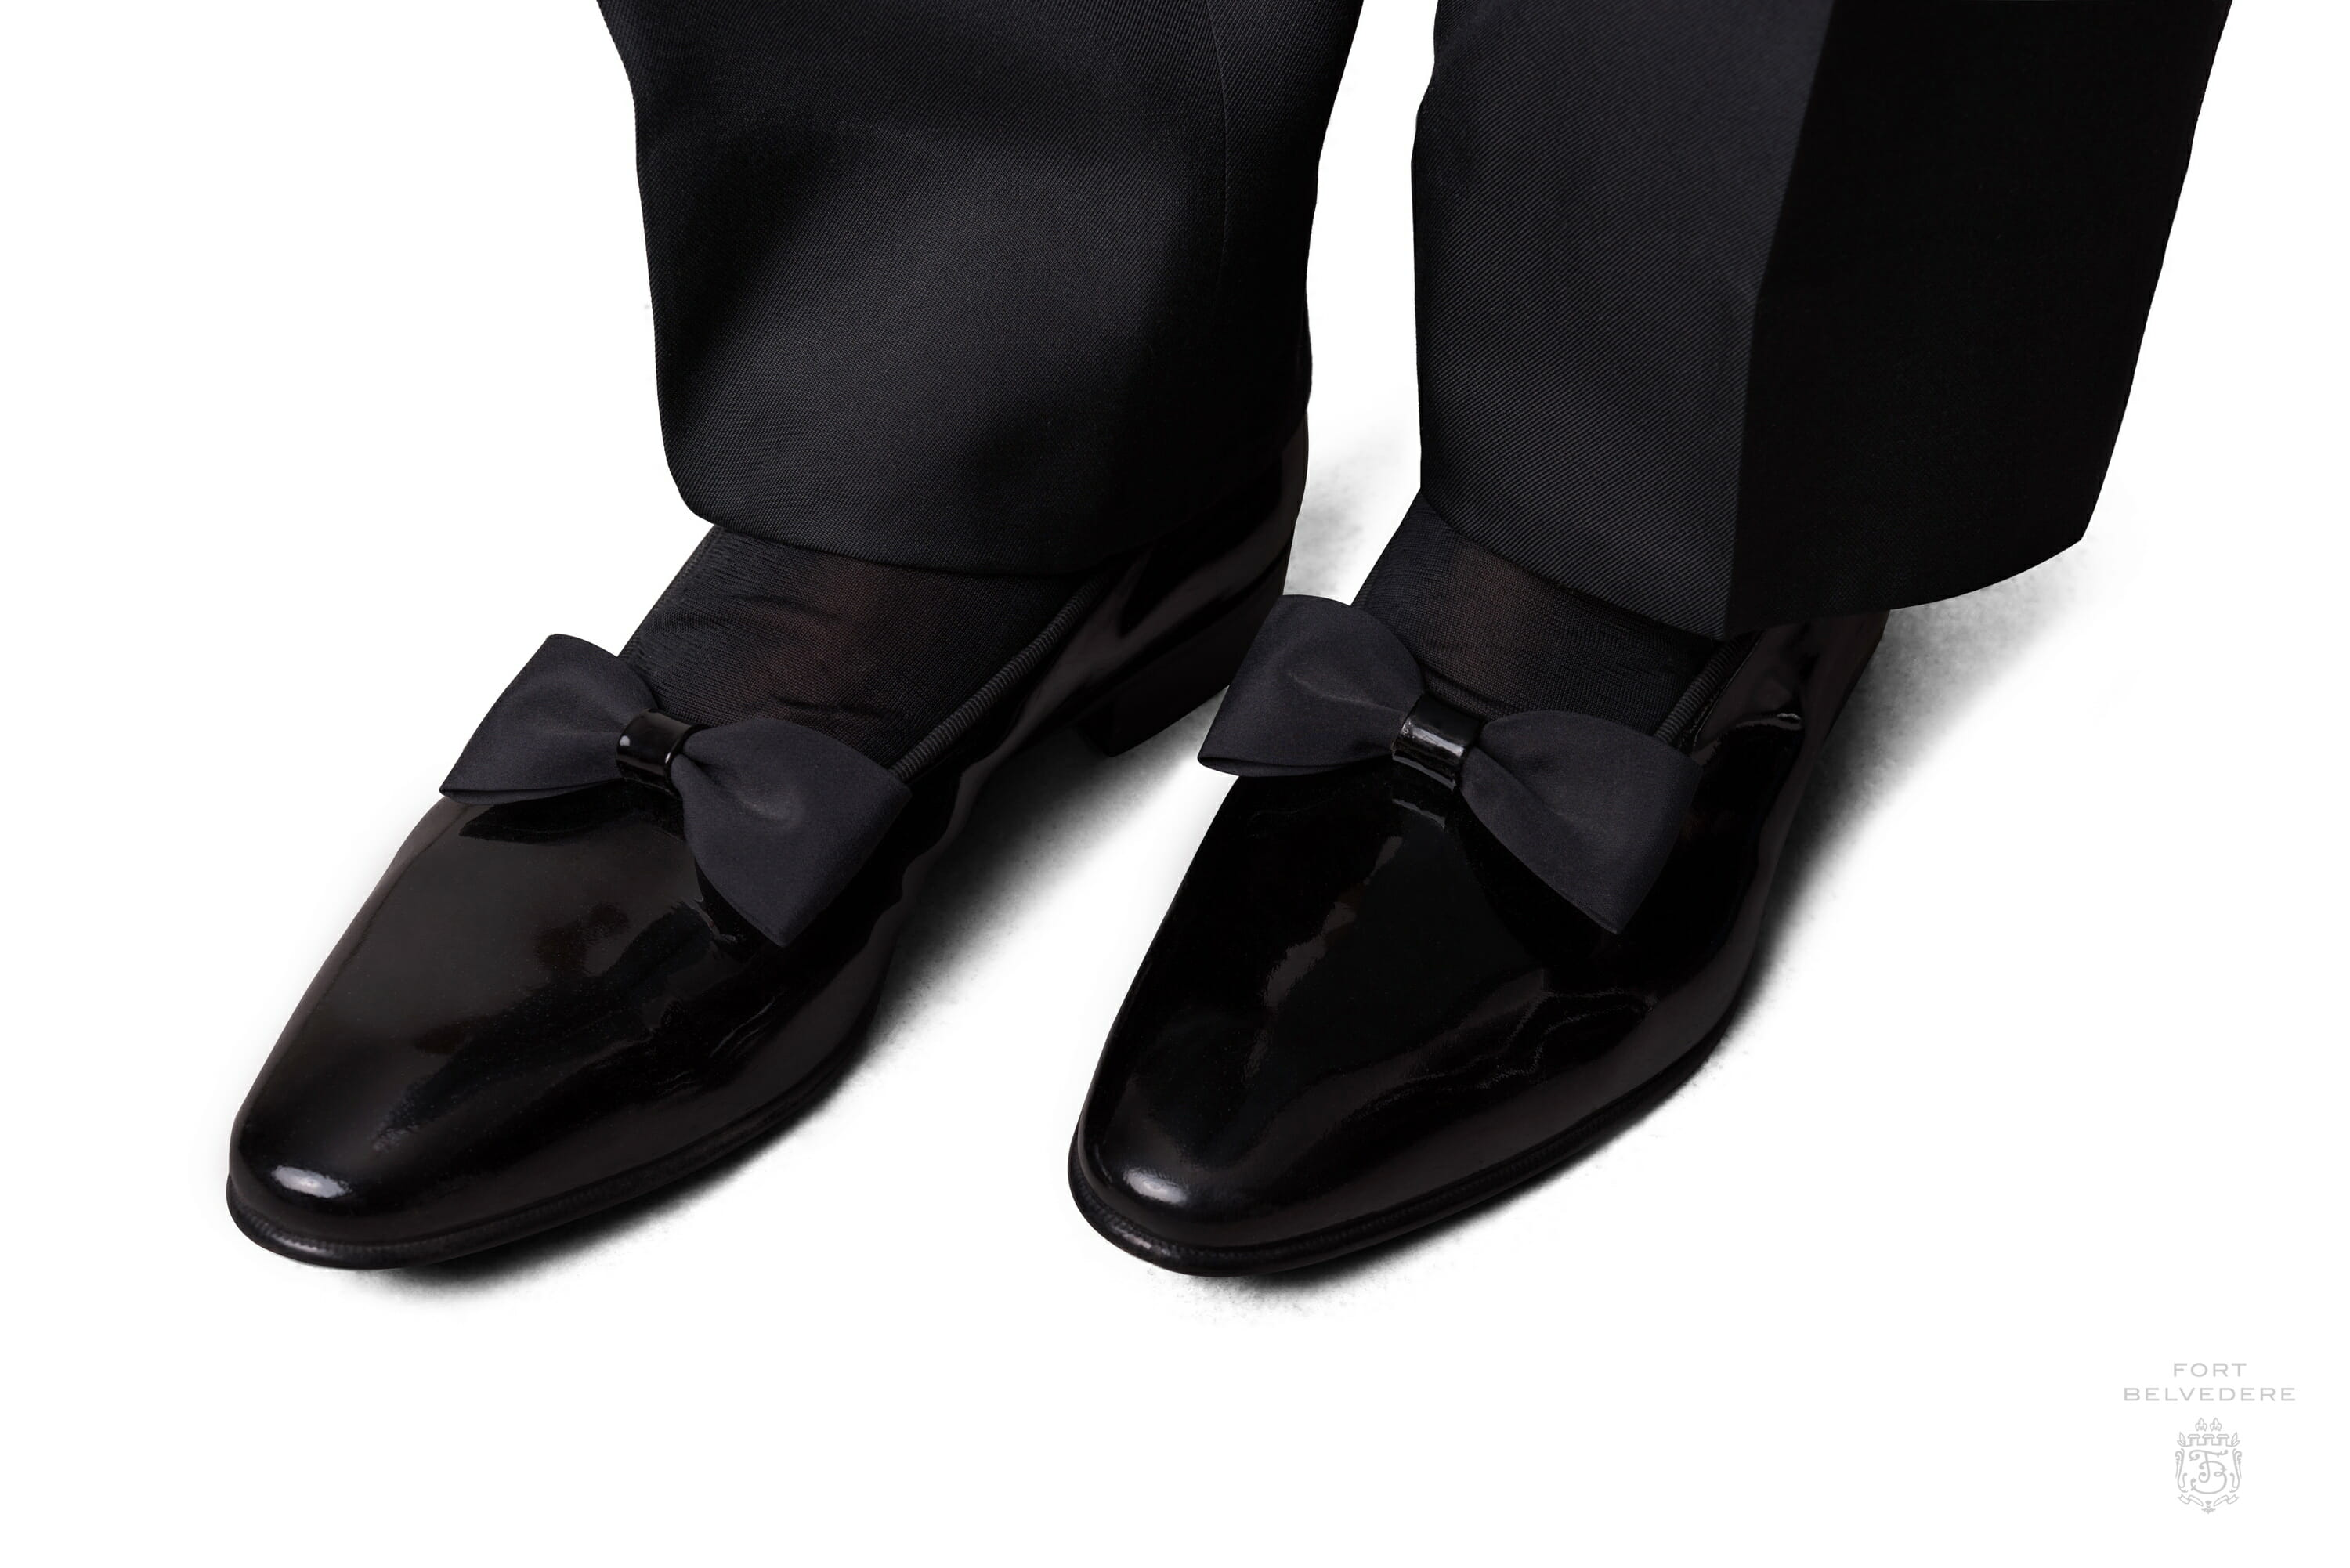 New Black Striped Satin Top Patent sided Oxfords Tuxedo dress shoes